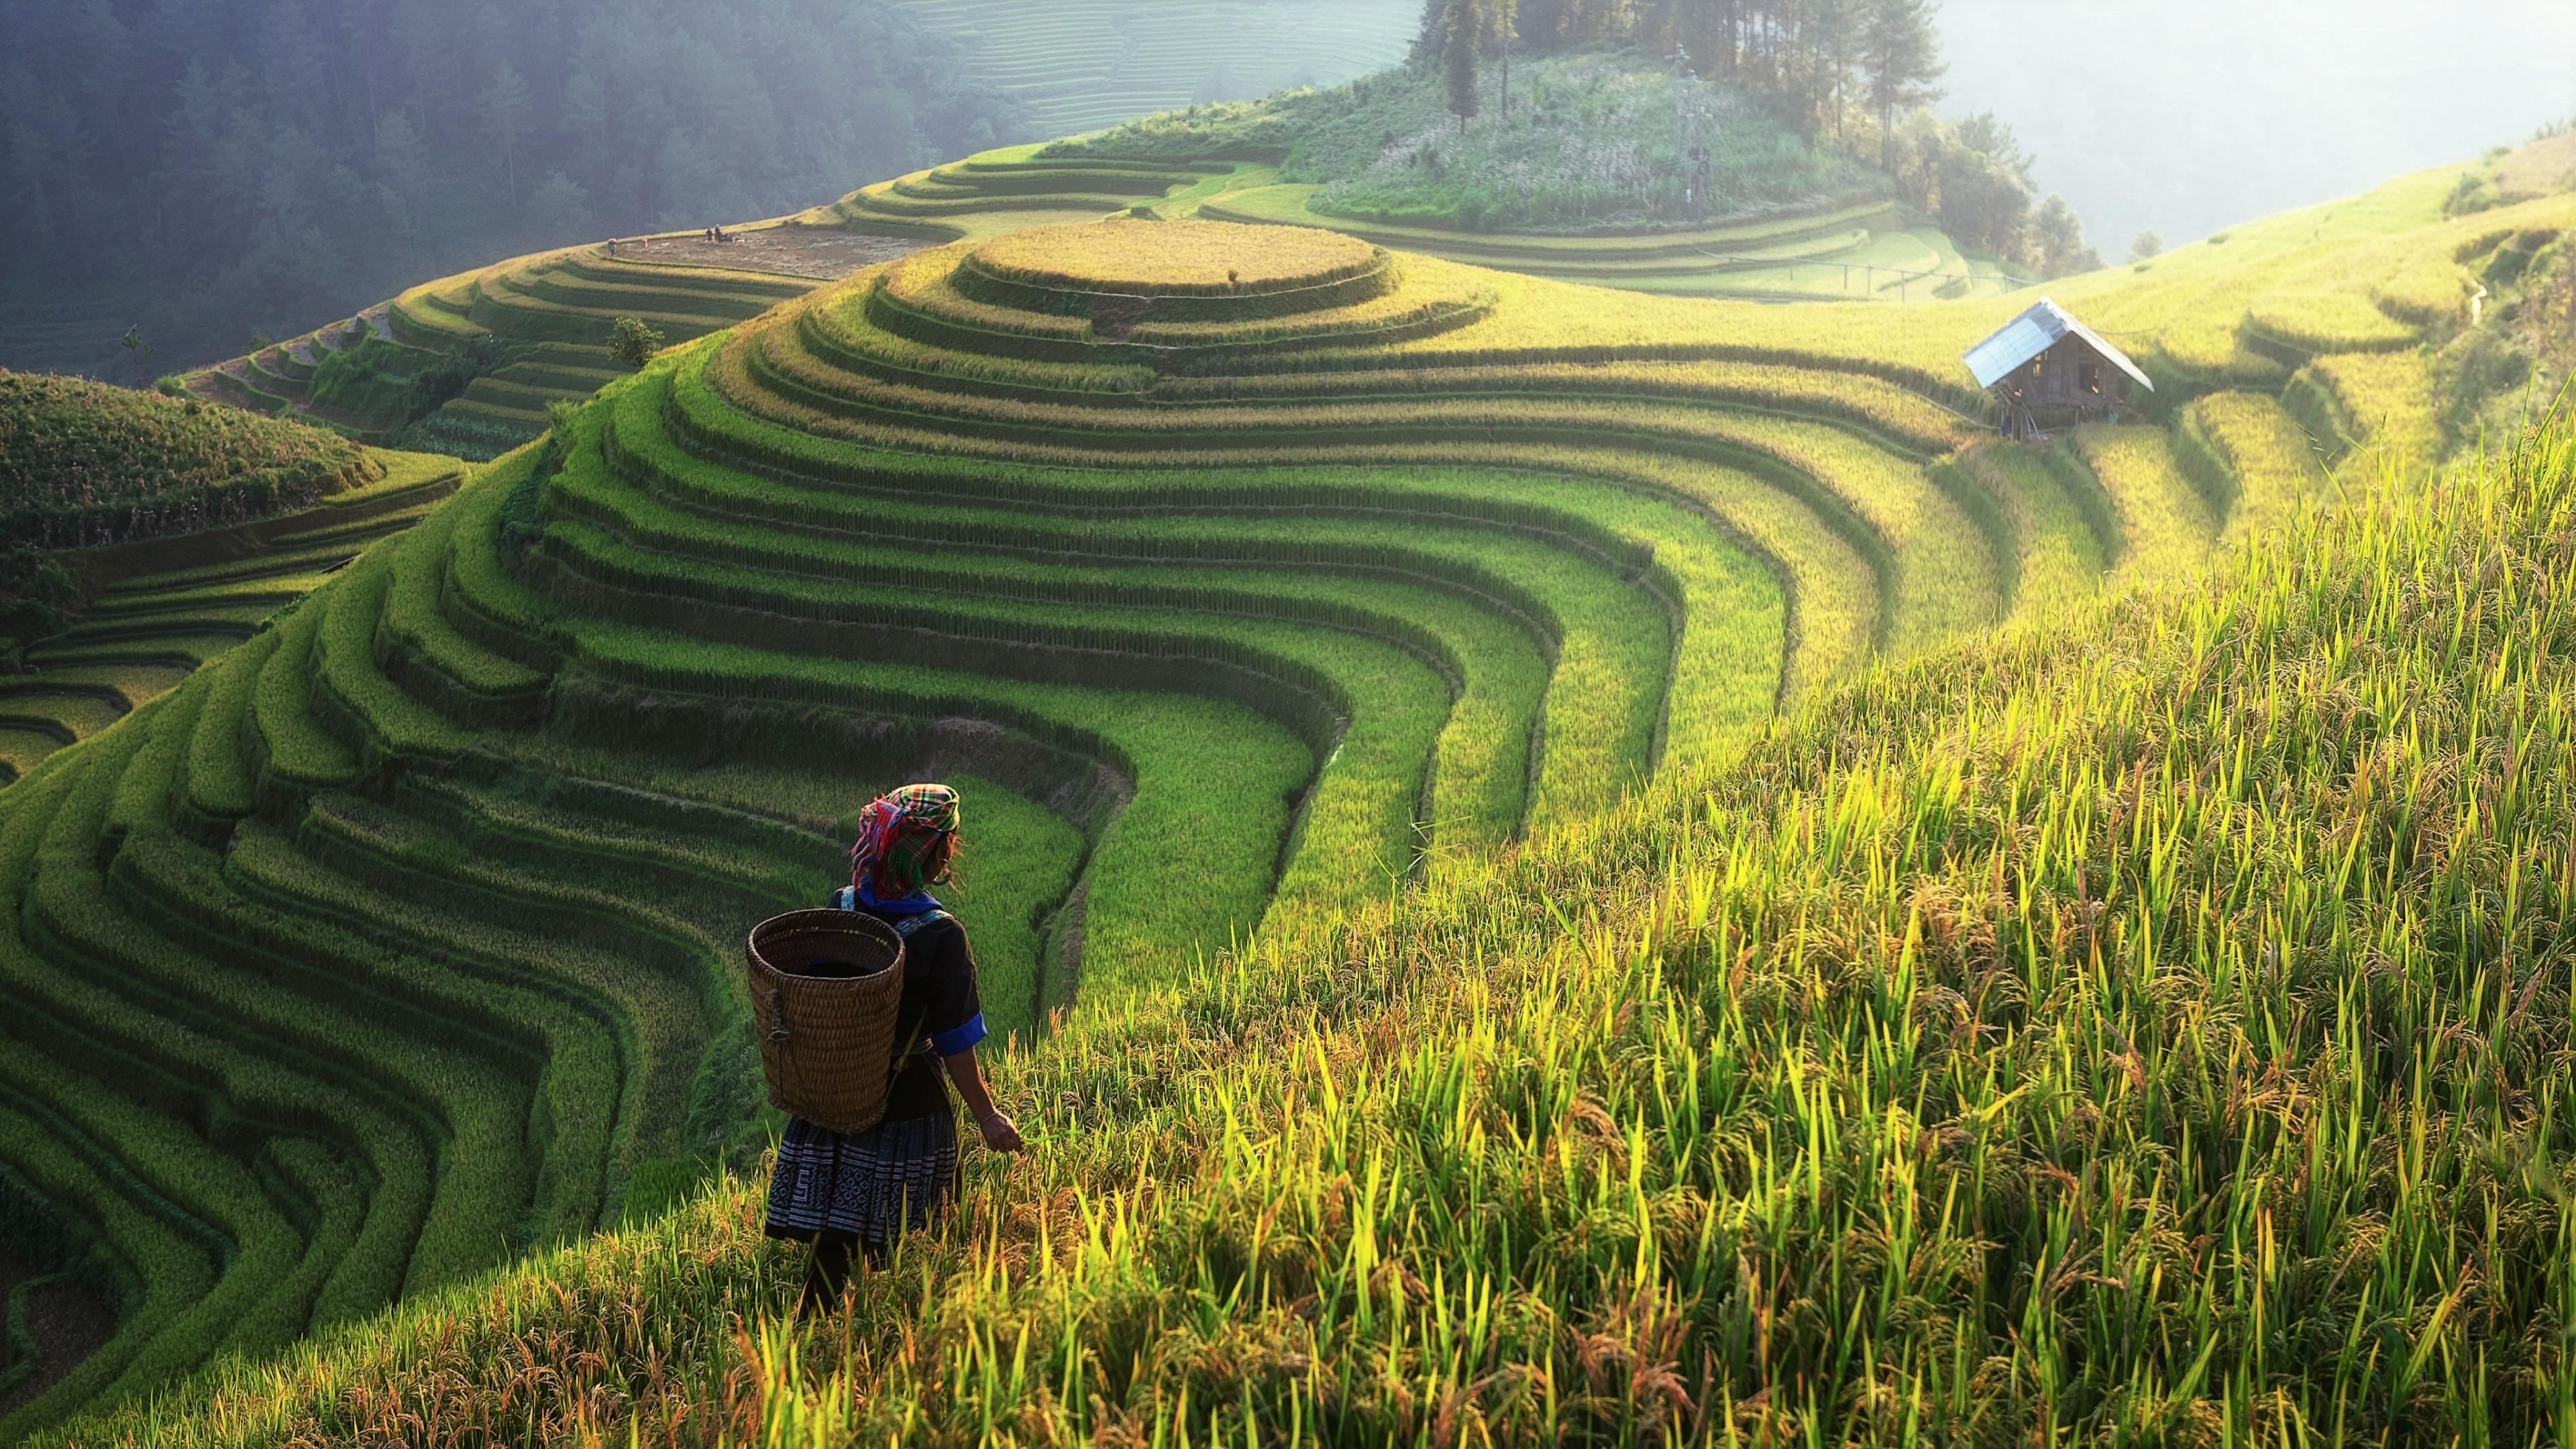 Rice terraces in China wallpaper